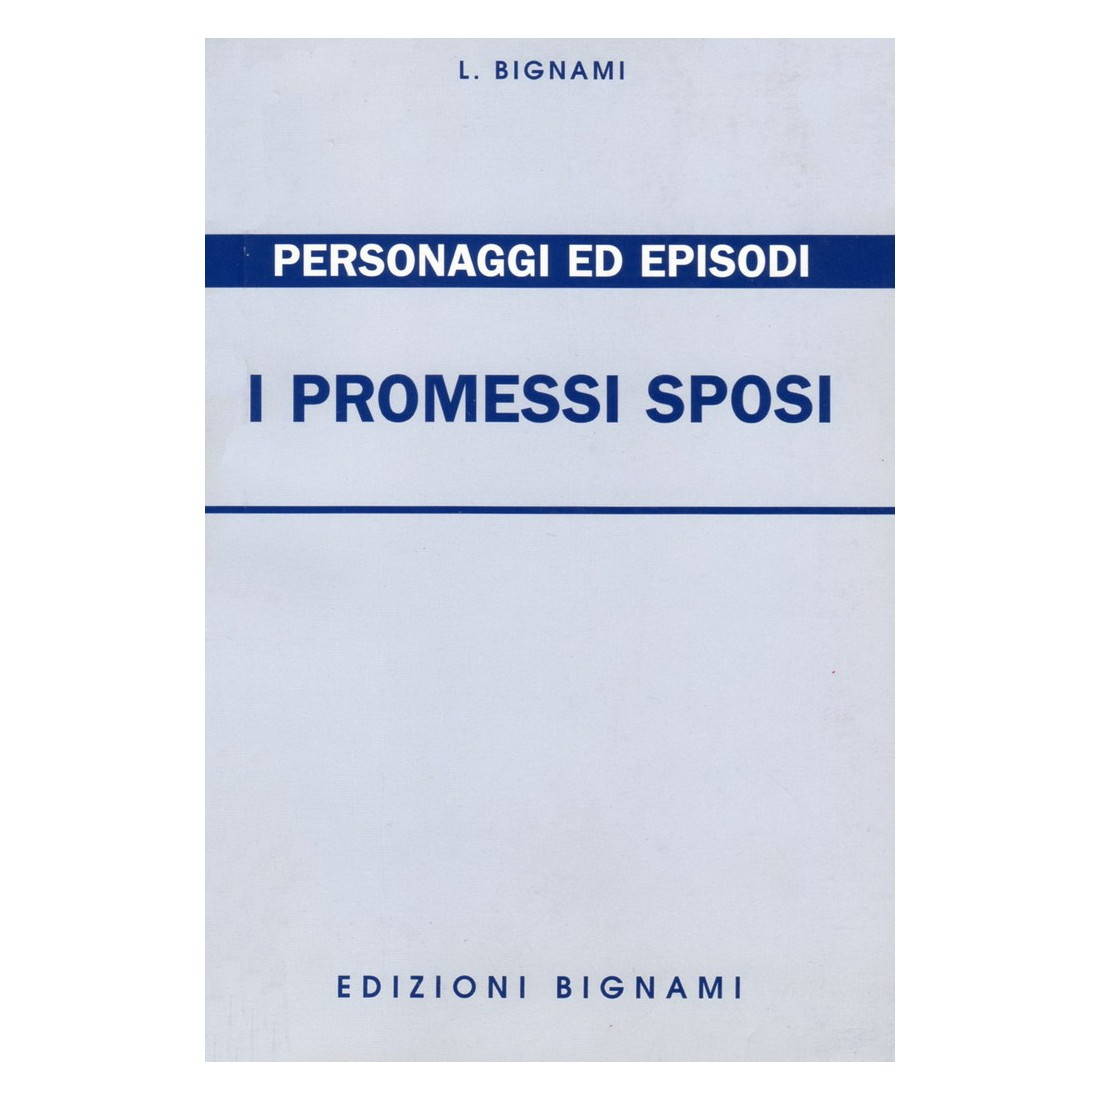 I promessi sposi full italian movie